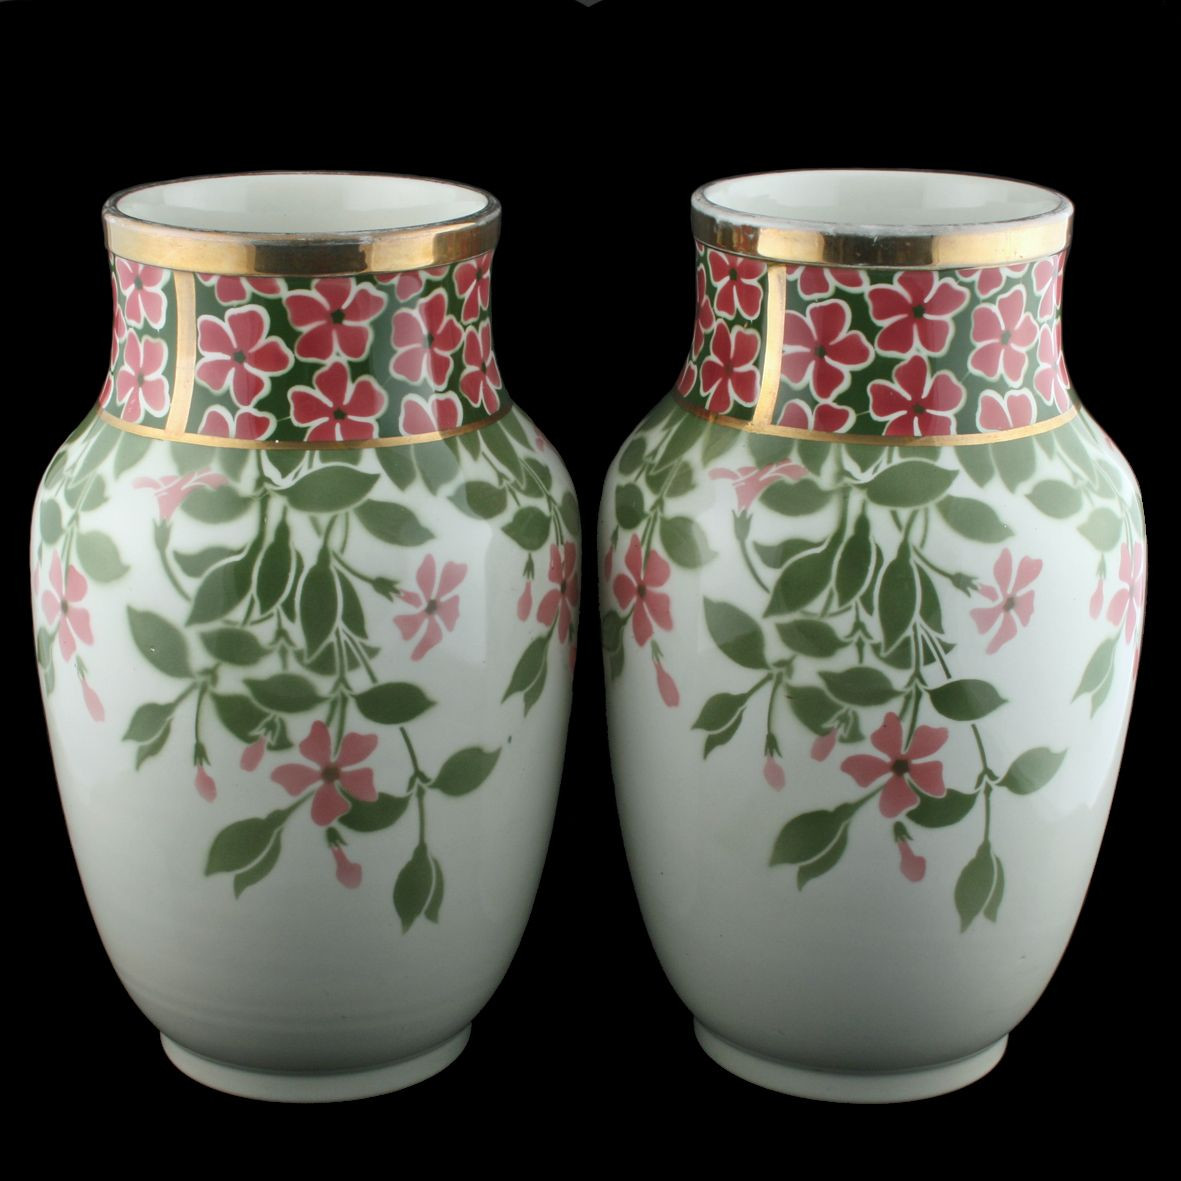 antique japanese metal vases of pair of luneville pottery vases pottery vase and pottery in large pair of early century french pottery vases by kg luneville these impressive antique vases are available to buy online now